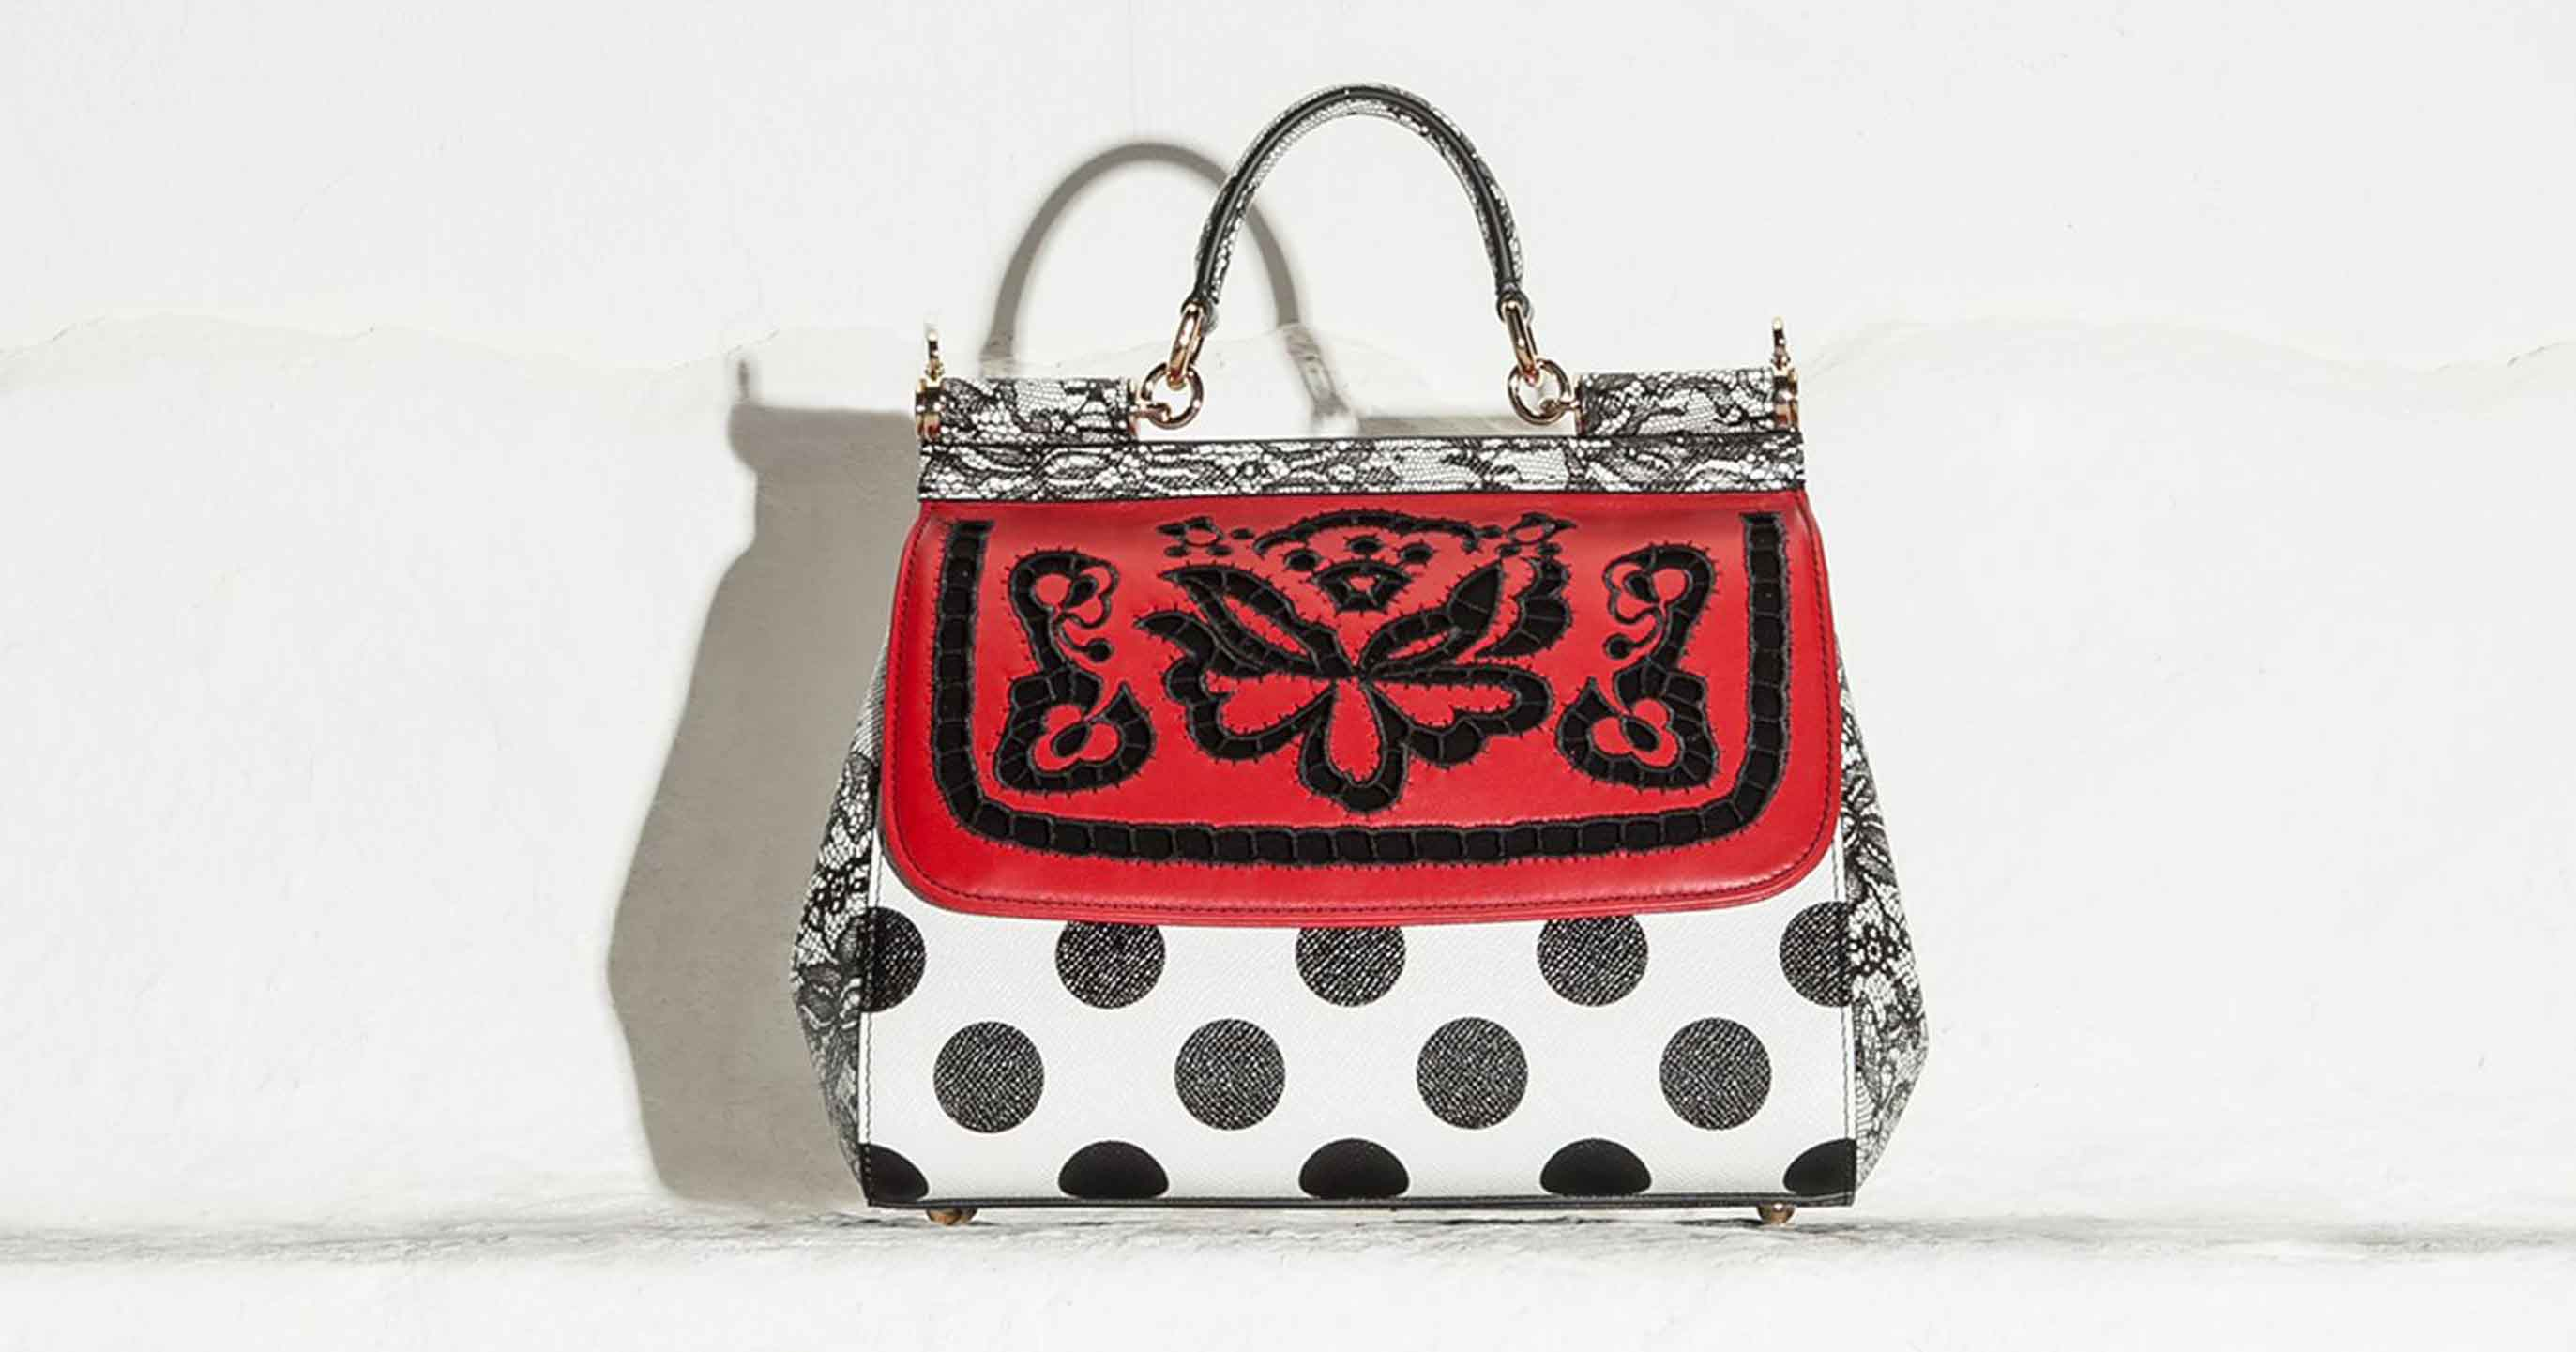 Bag at You - Fashion blog - Dolce & Gabbana Sicily mix polka dot lace cutwork